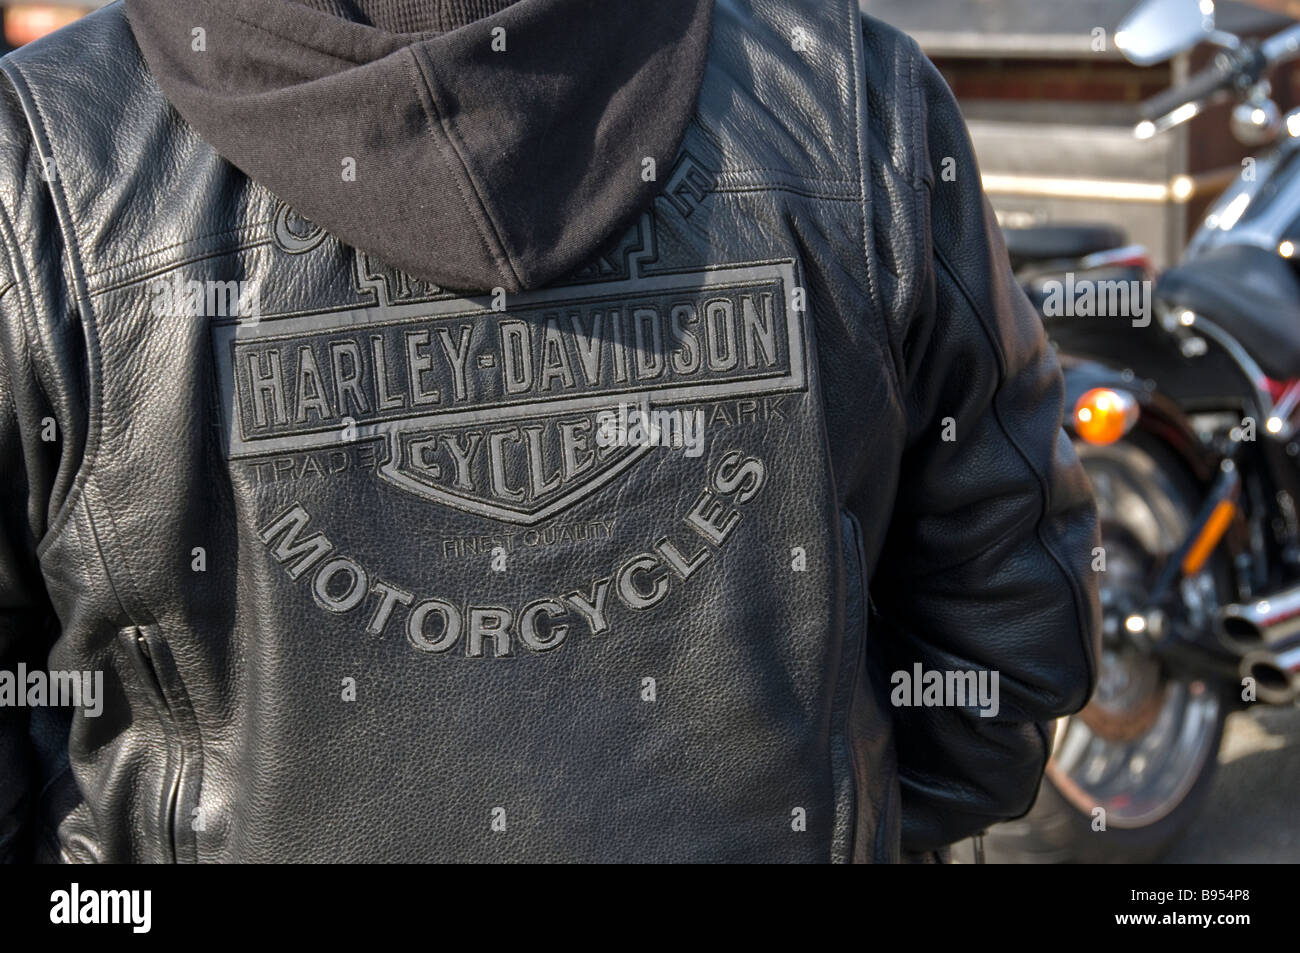 Harley Davidson Jackets For Sale In India